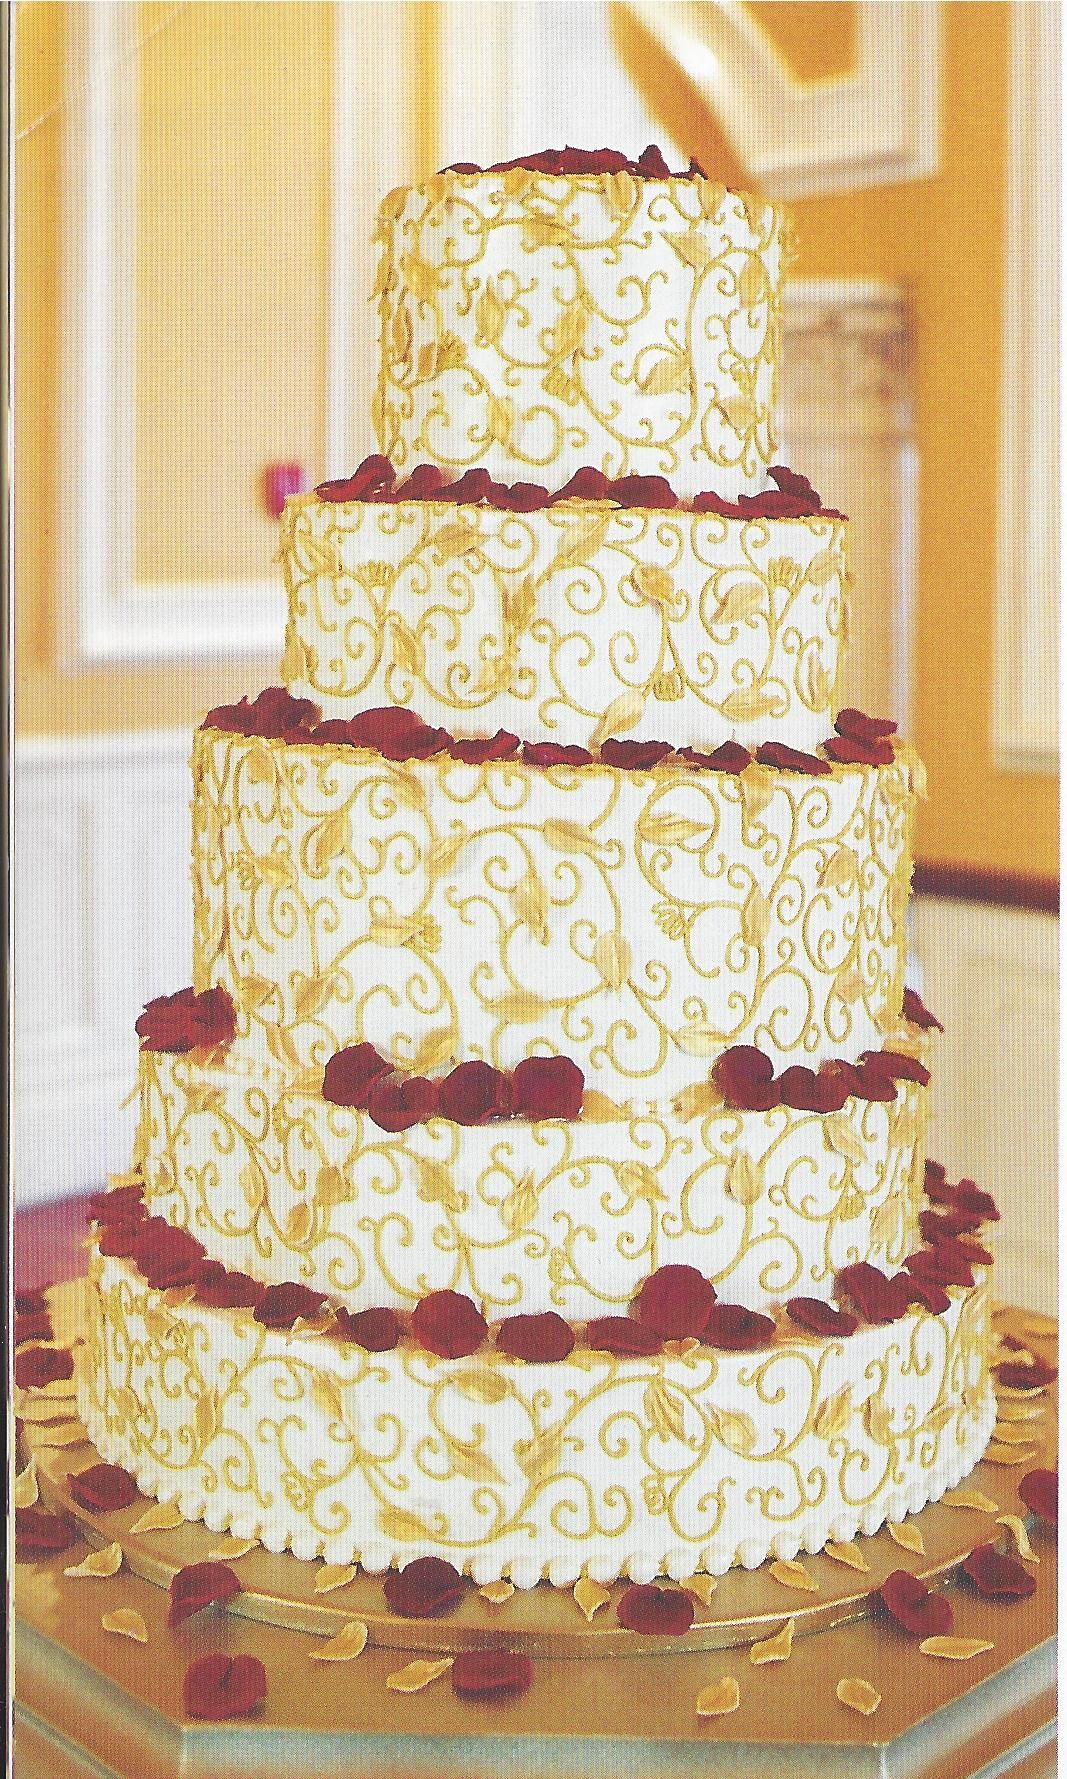 Indian Fusion Cake Design | Wedding cake | Pinterest | Cake designs ...